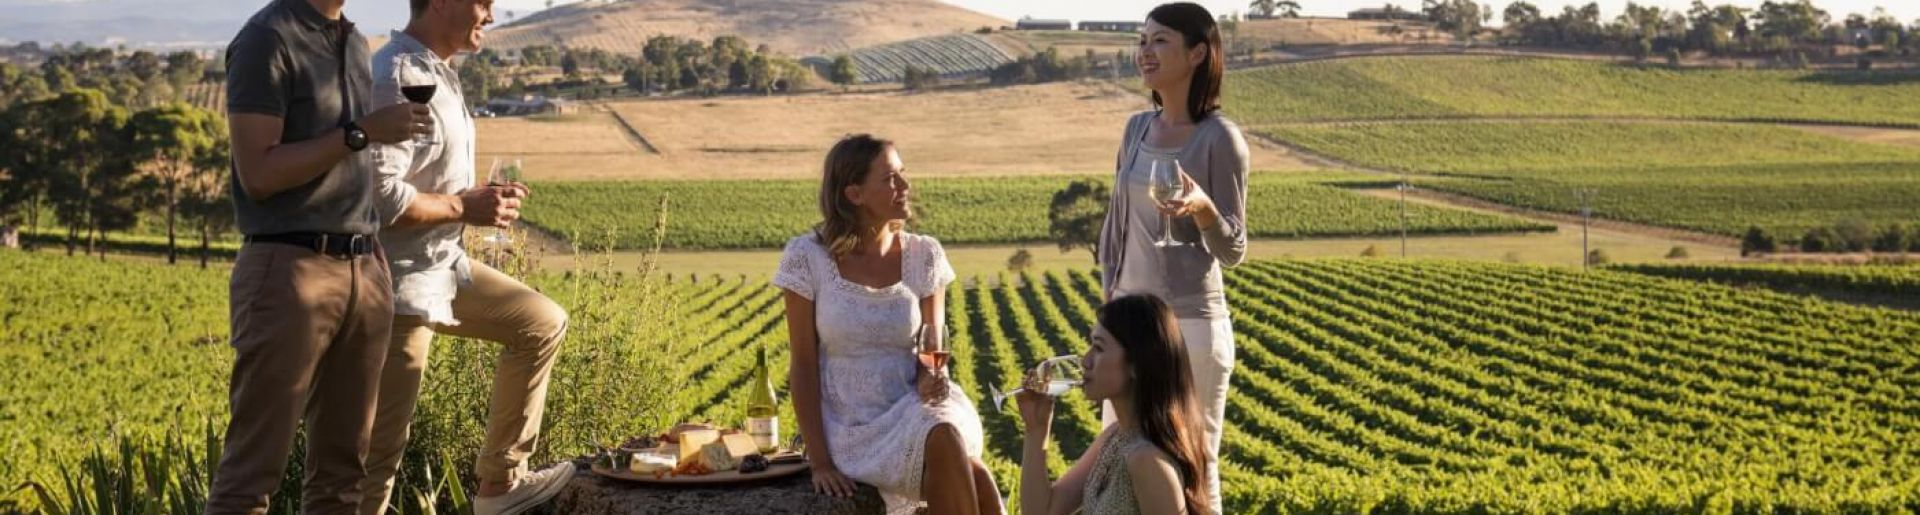 Yarra Valley Food & Wine Tours - Melbourne Private Tours